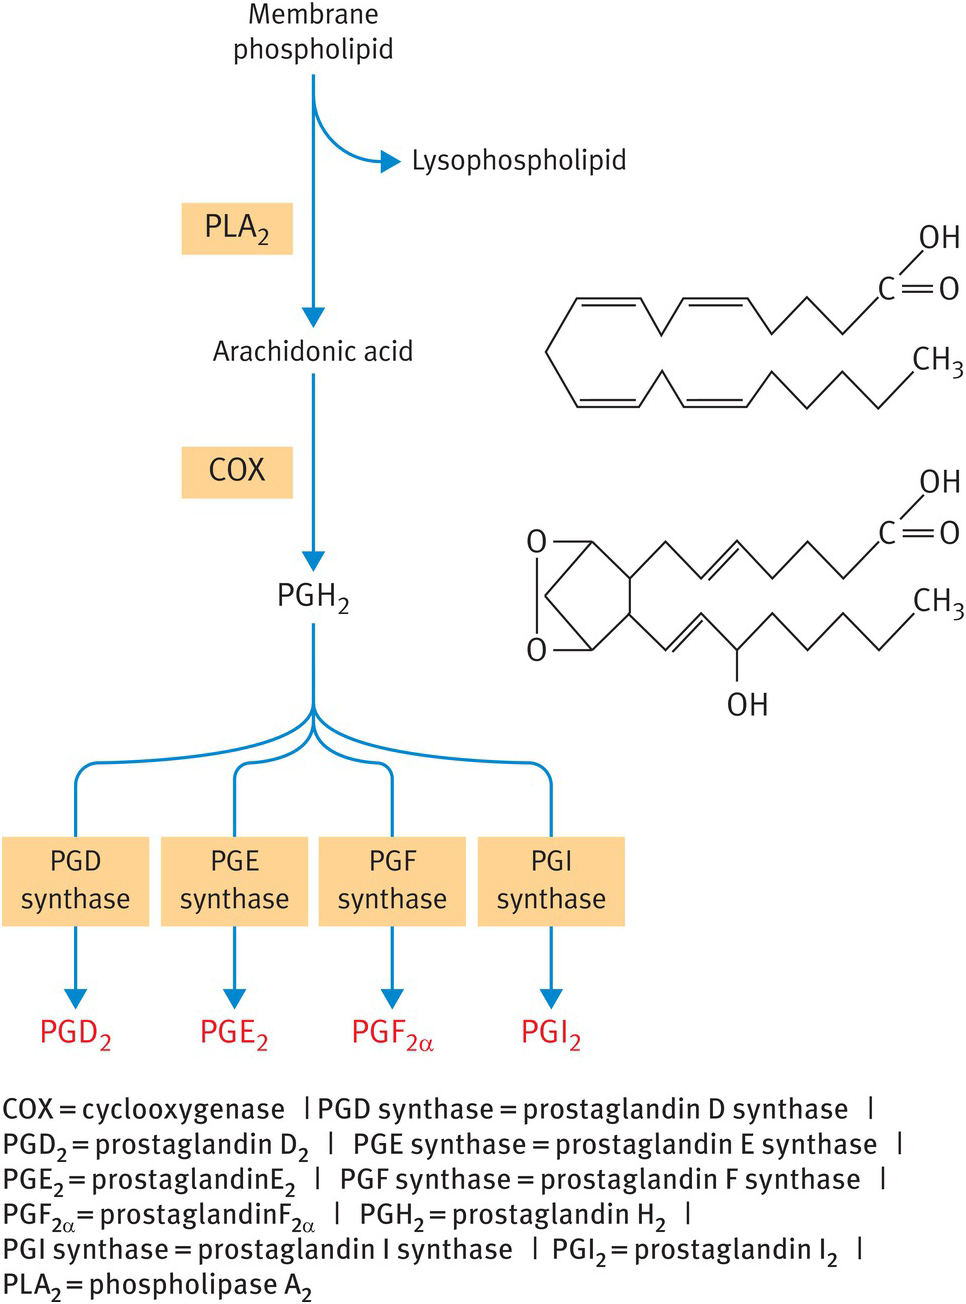 Pgh steroids beginners steroids cycle